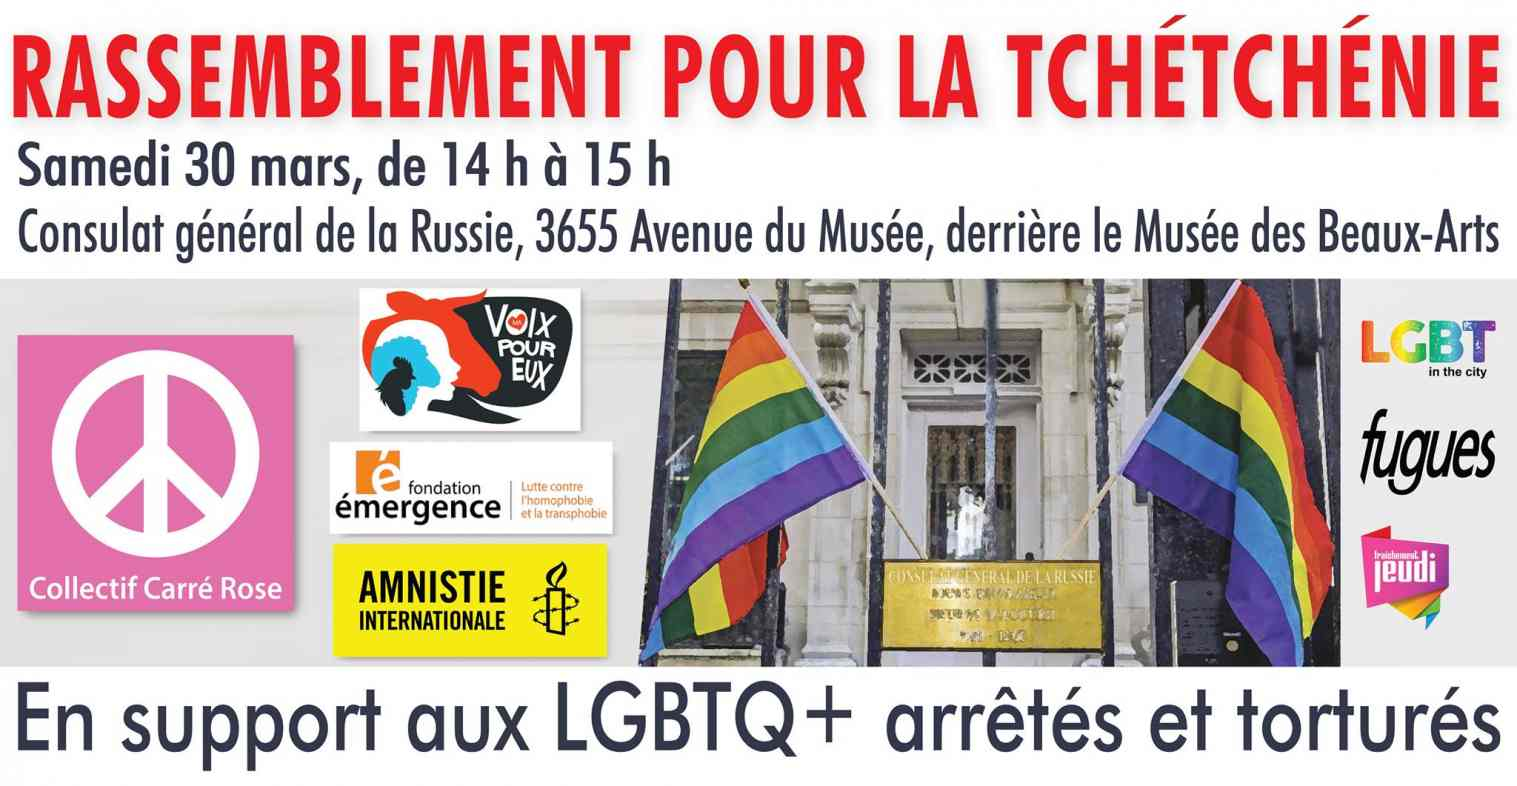 A coalition of PRO-LGBT + organizations will hold a Rally for Chechnya